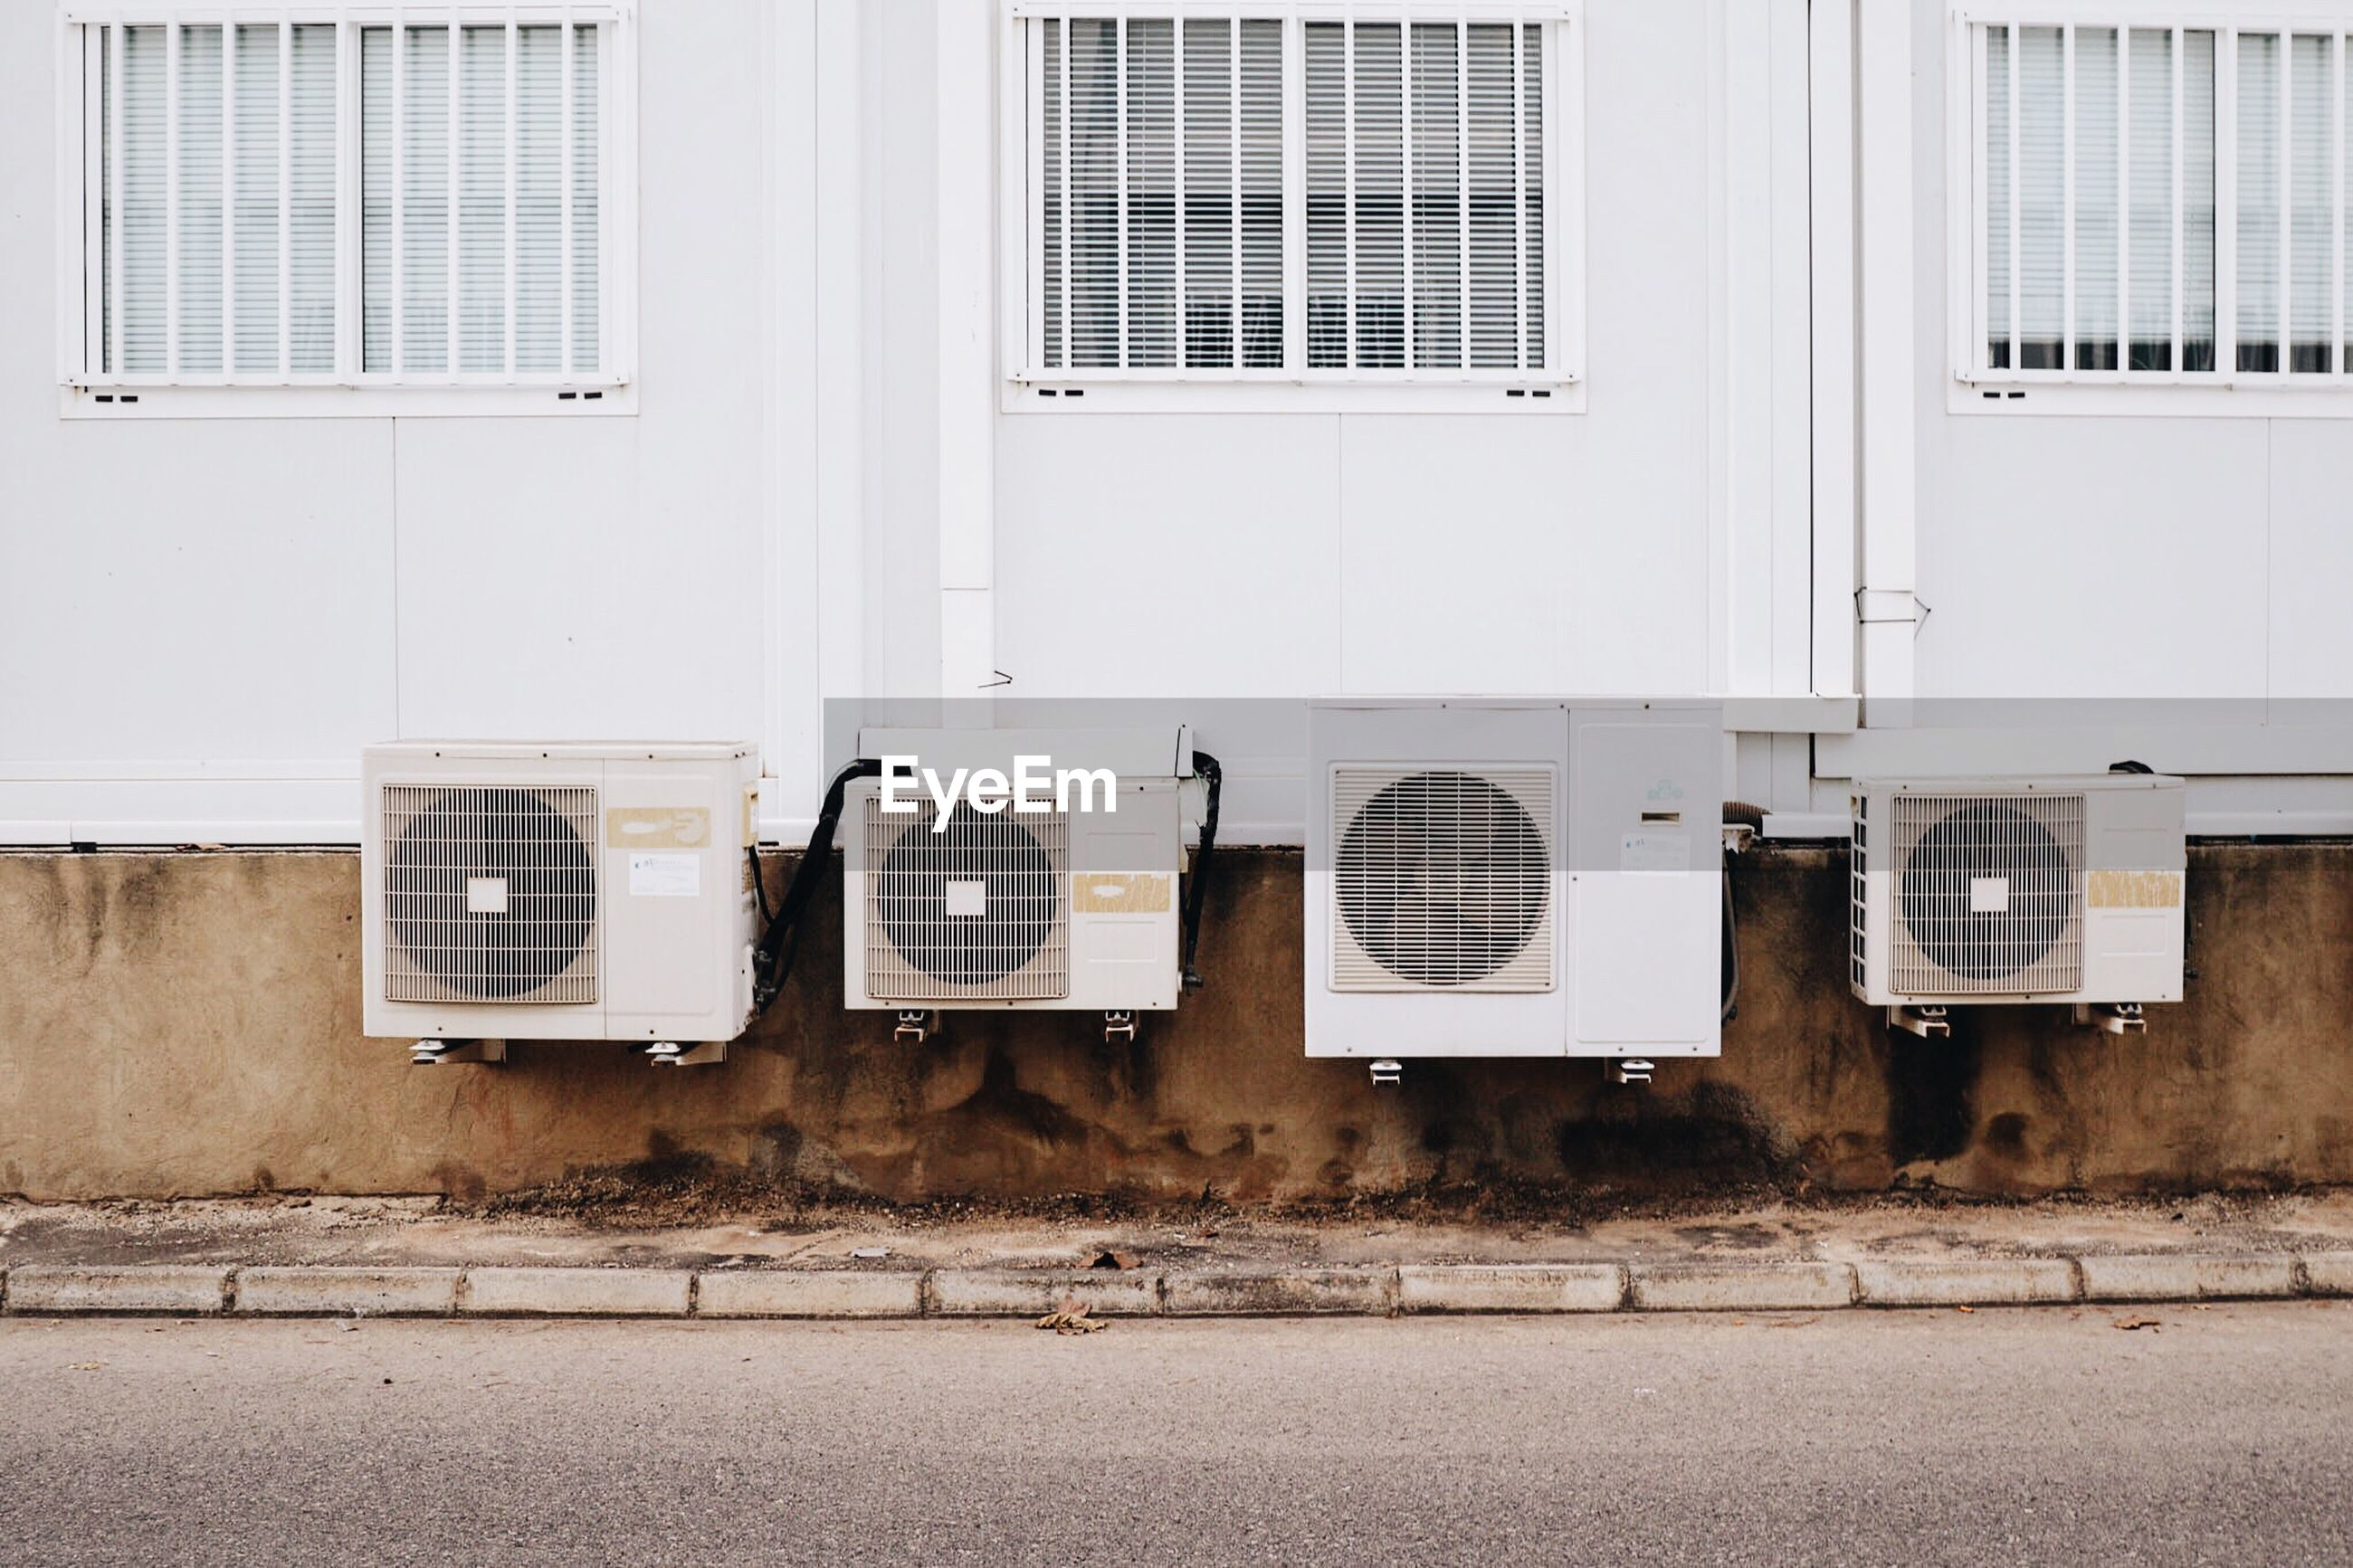 Air conditioners mounted on building by sidewalk